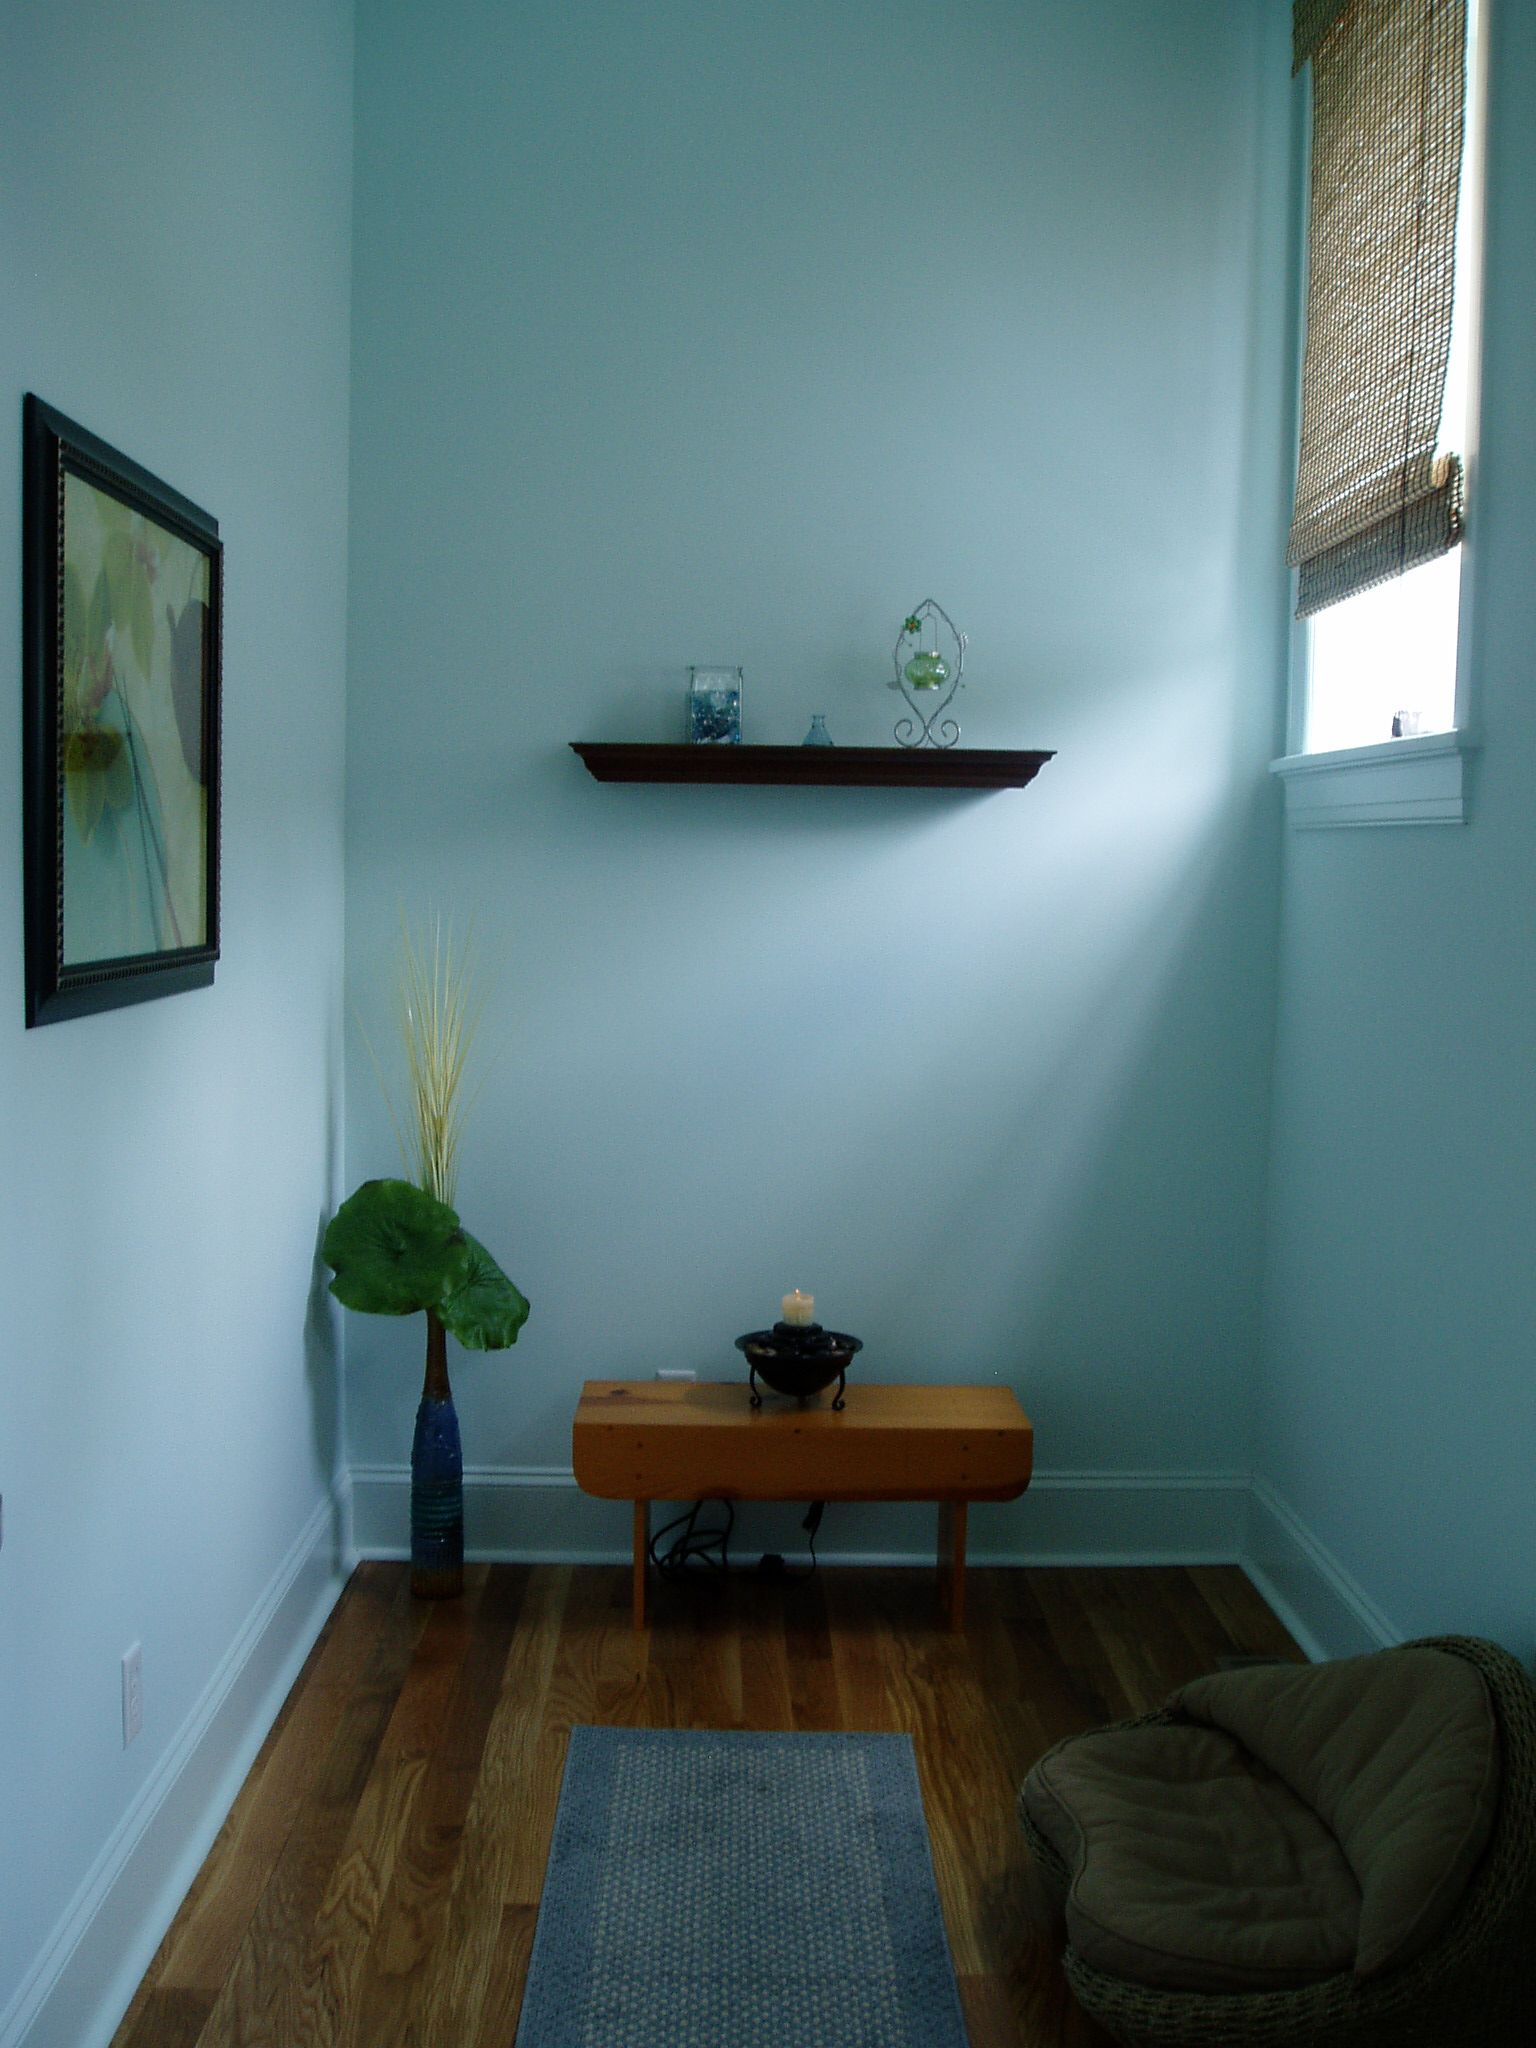 Pictures Of Meditation Rooms meditation room | meditation | pinterest | meditation rooms, tiny